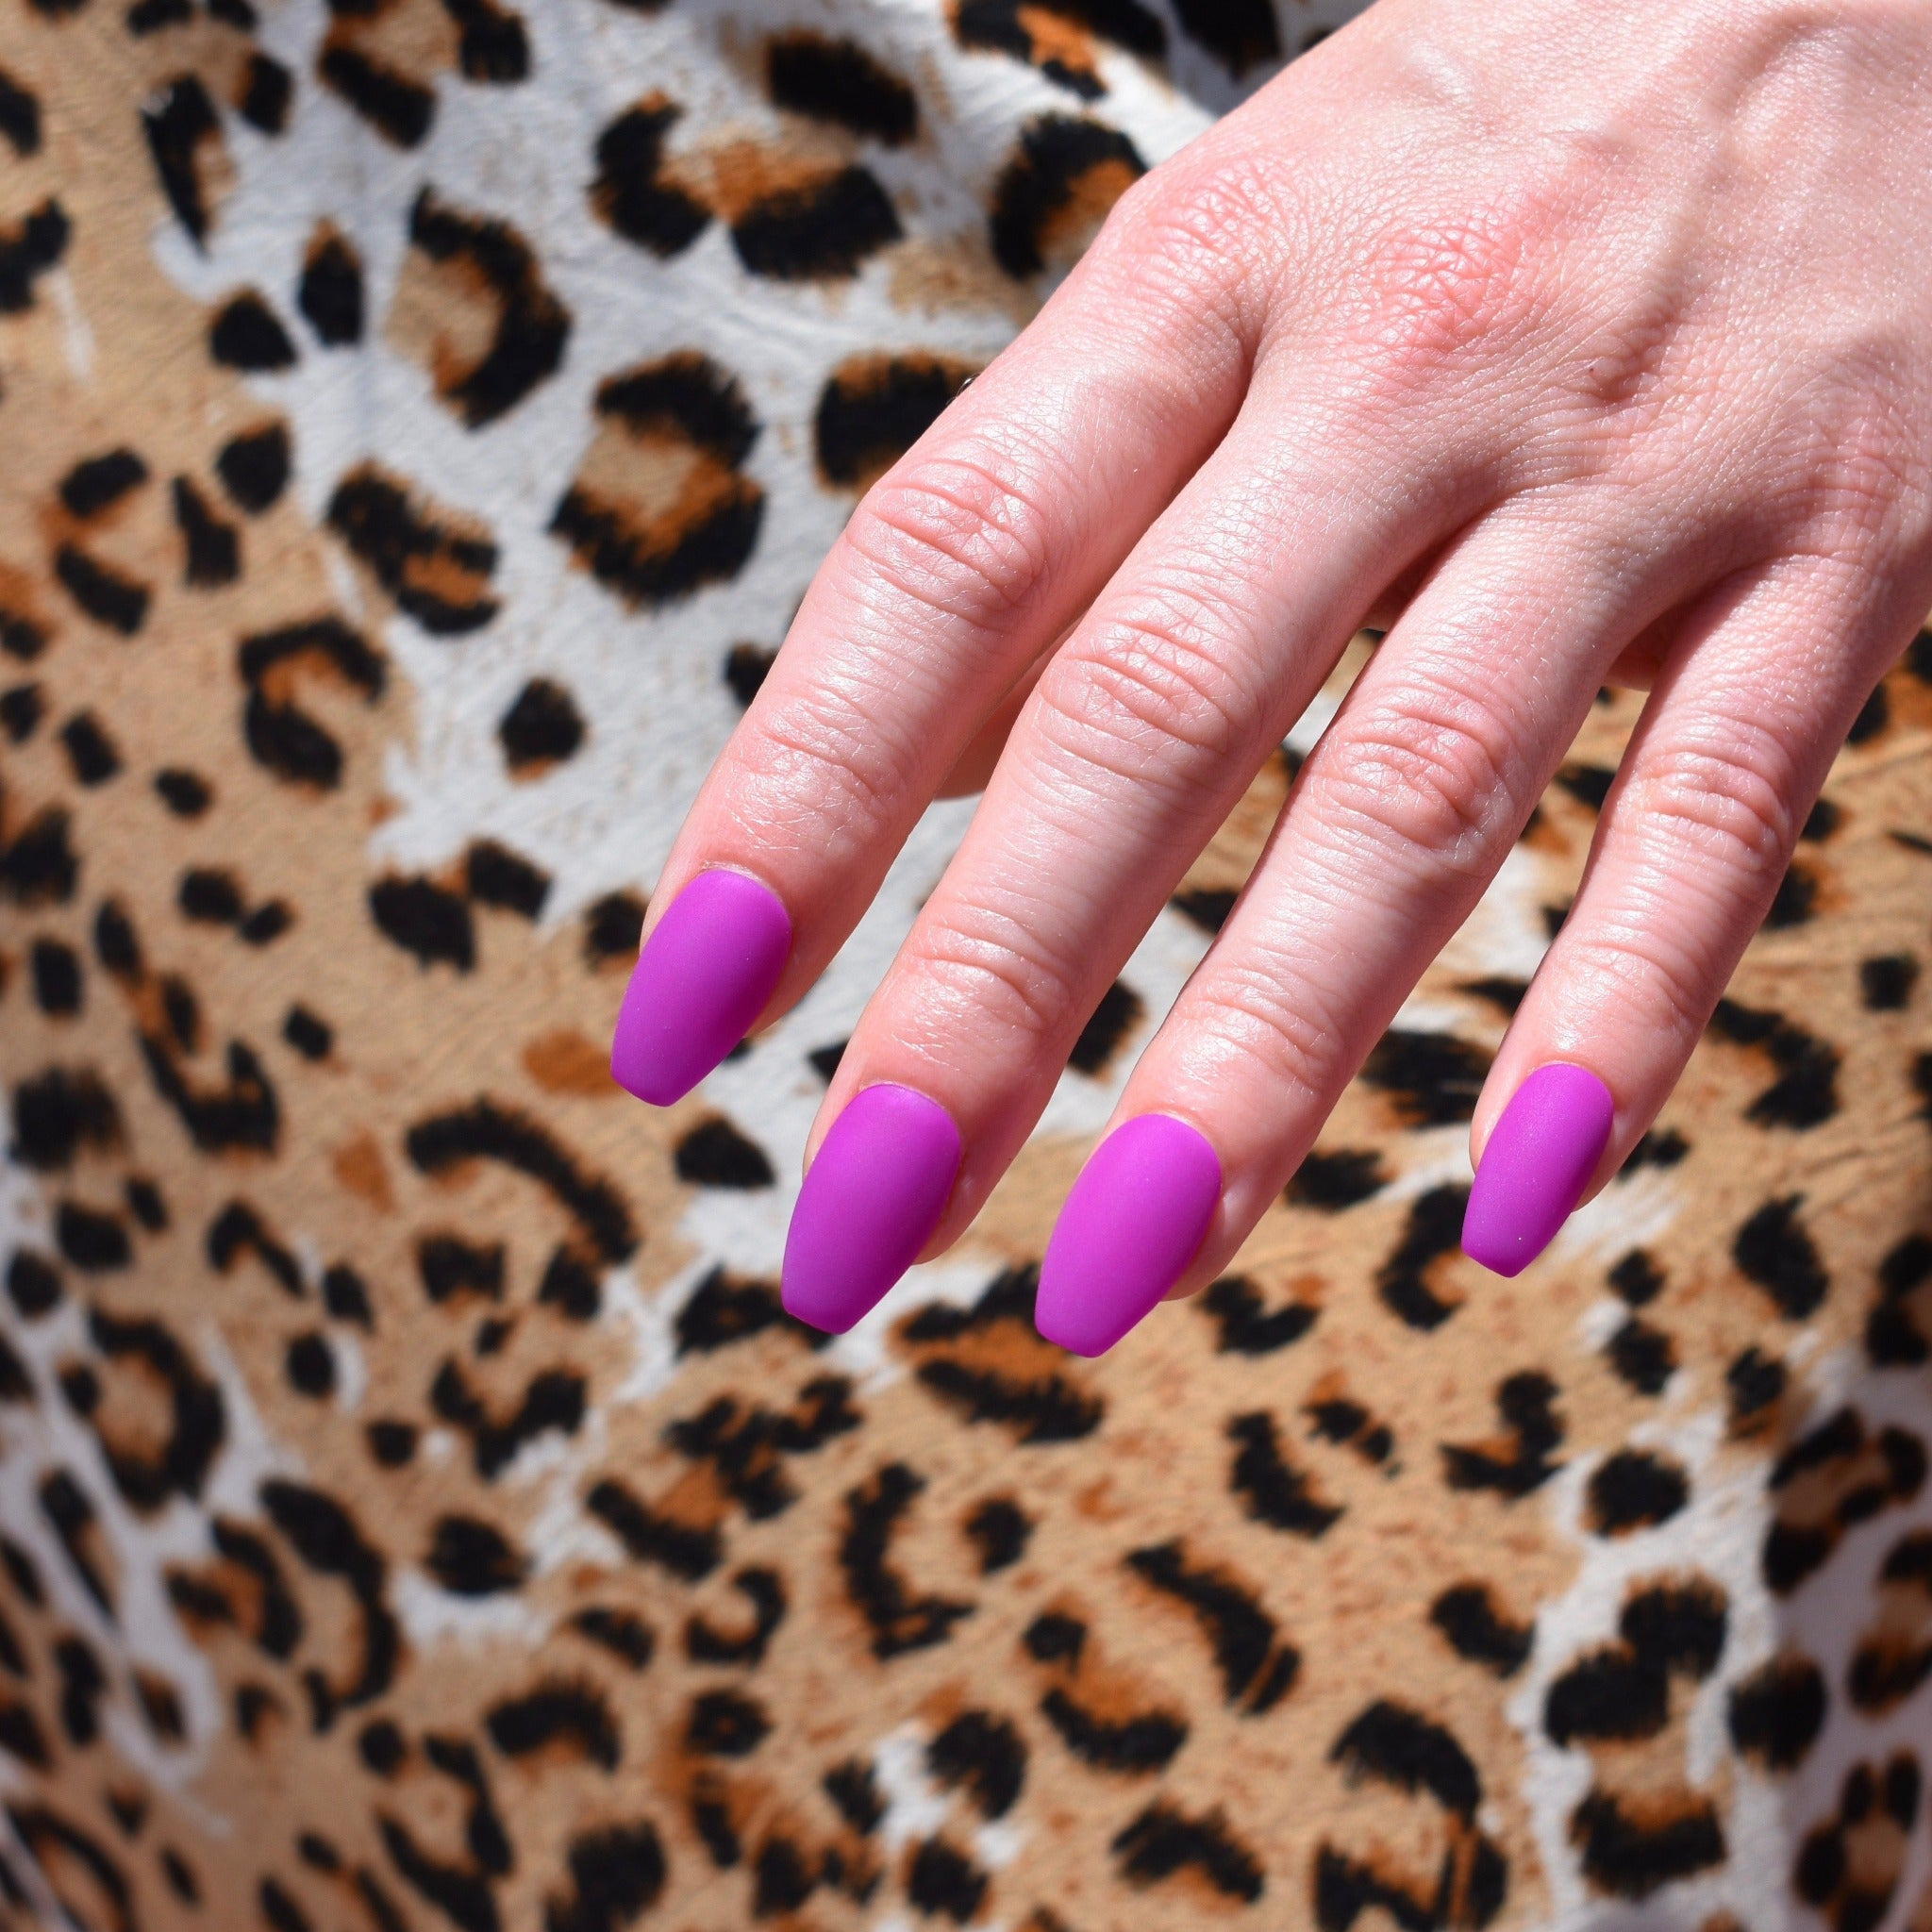 Gel polish hand-painted press on nails on one had. The Coffin shaped nails are in a vibrant fuschia with a matte finish. The models hand rests over a leopard print shirt.